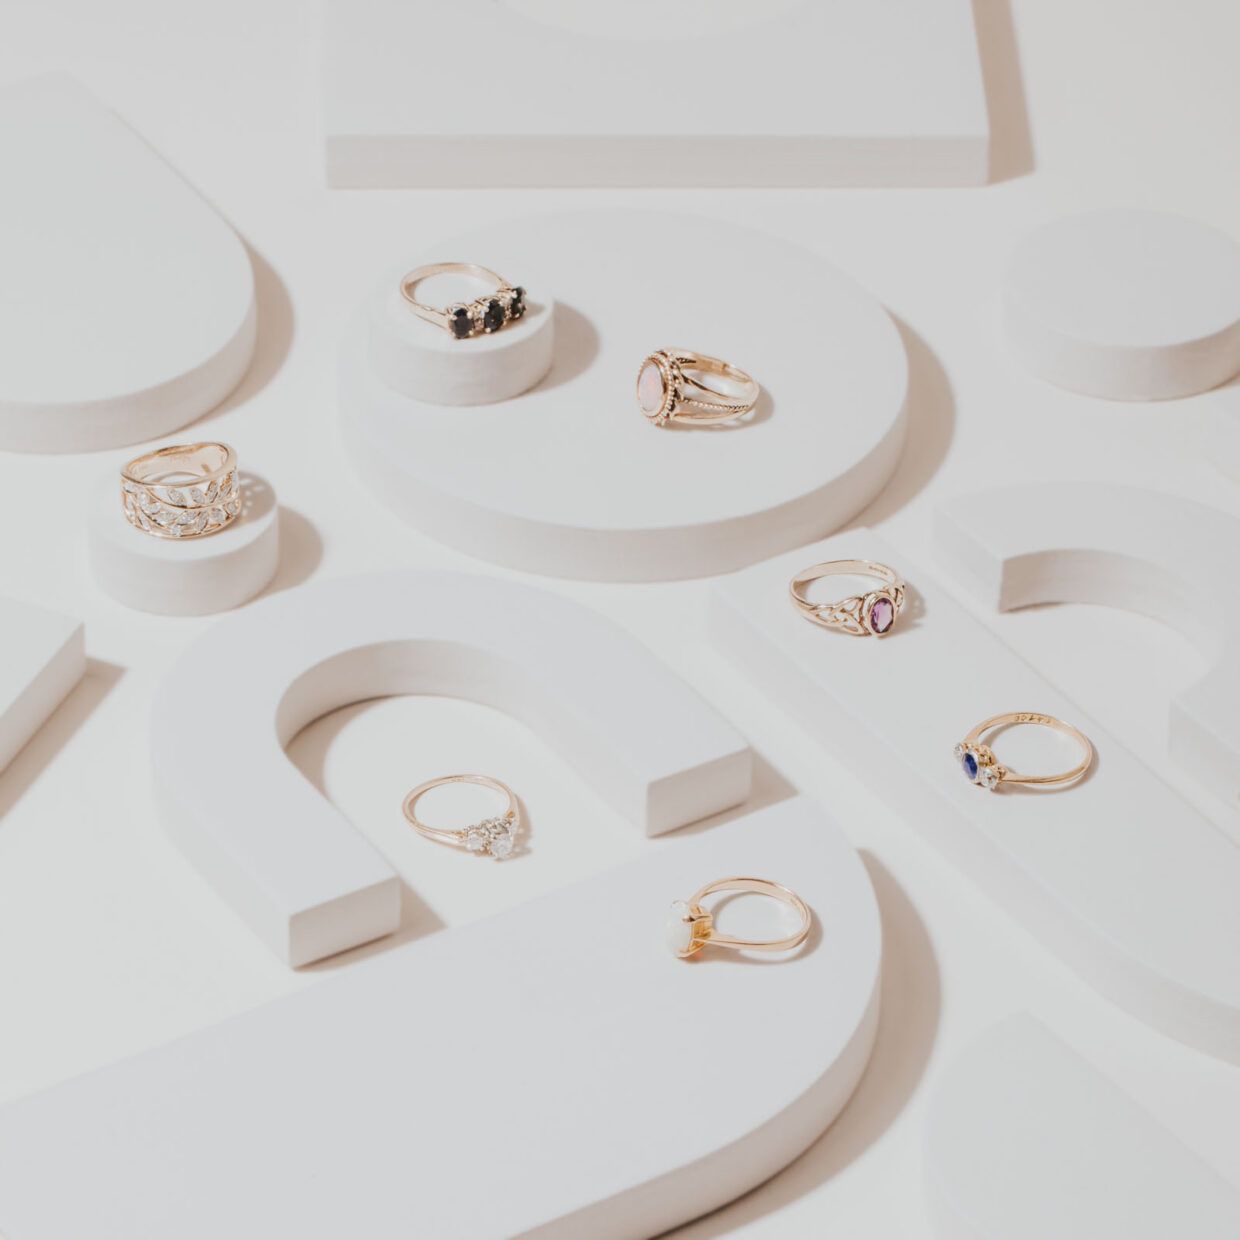 Many multiple rings layflat for commercial product photography for e-comm.